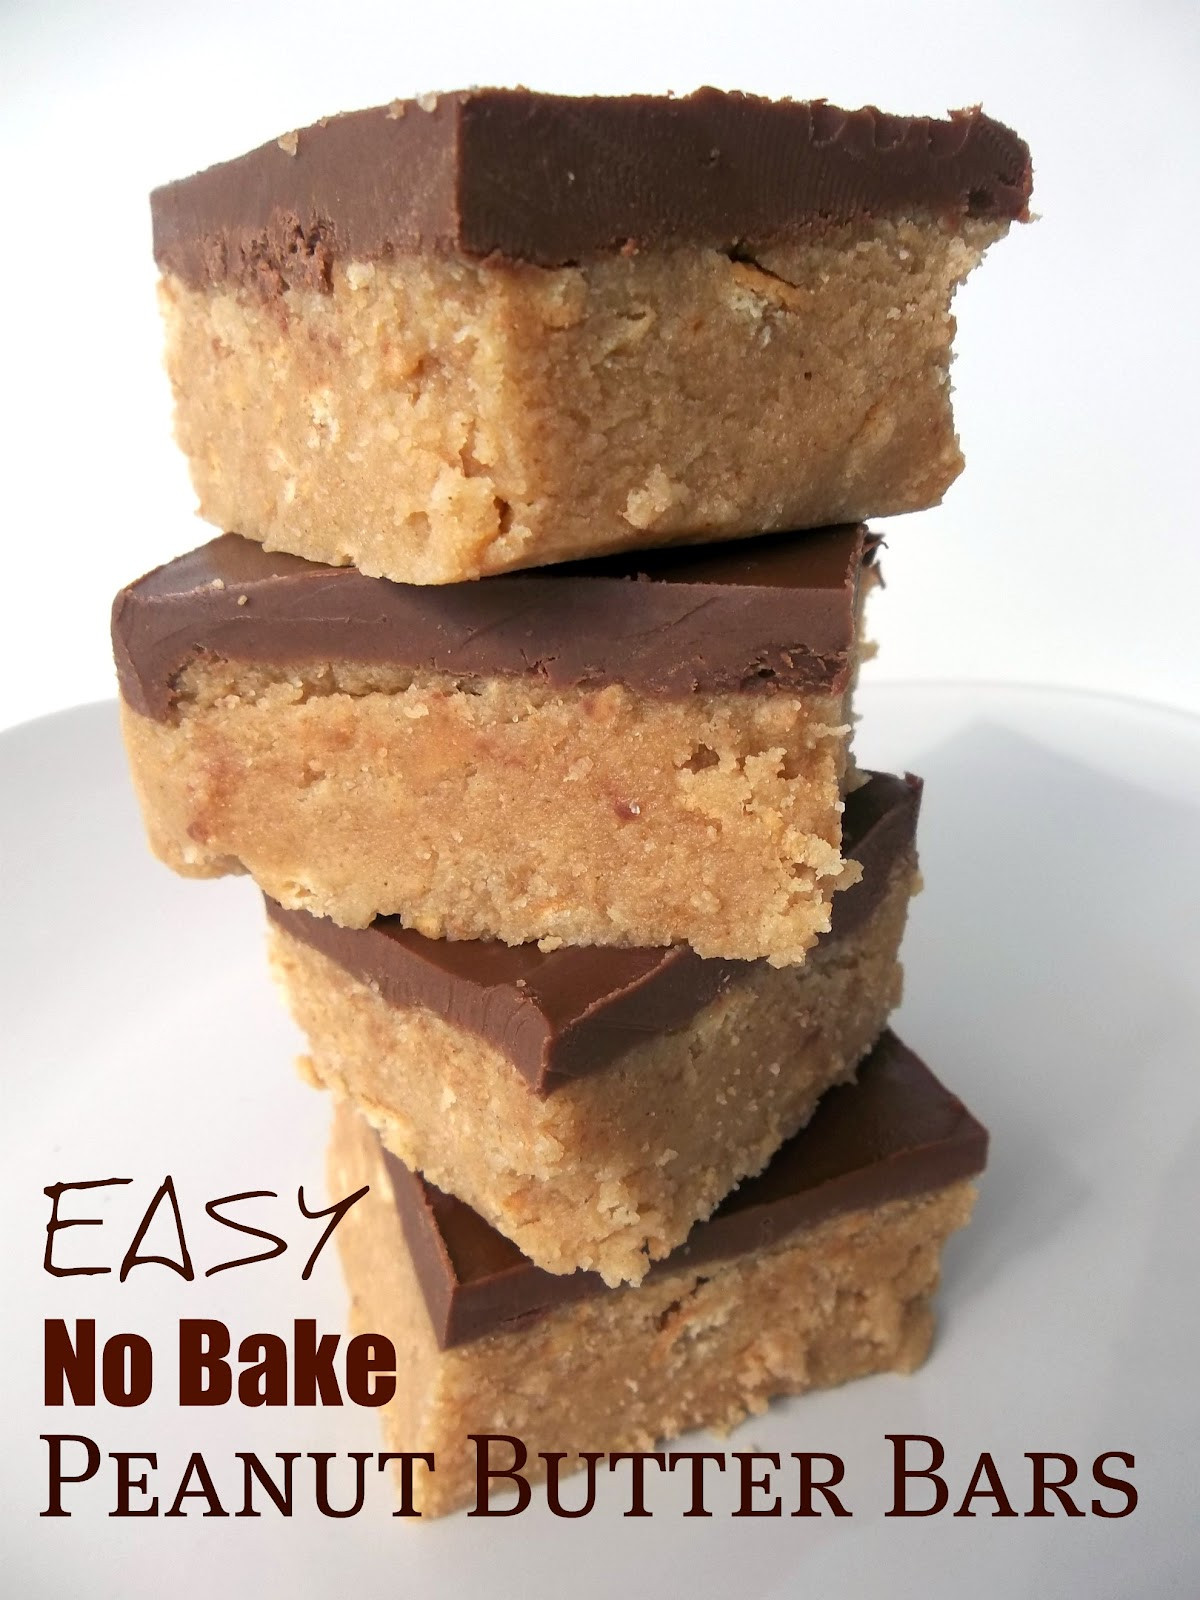 Easy Bake Desserts  A Wise Woman Builds Her Home Easy No Bake Dessert Recipes